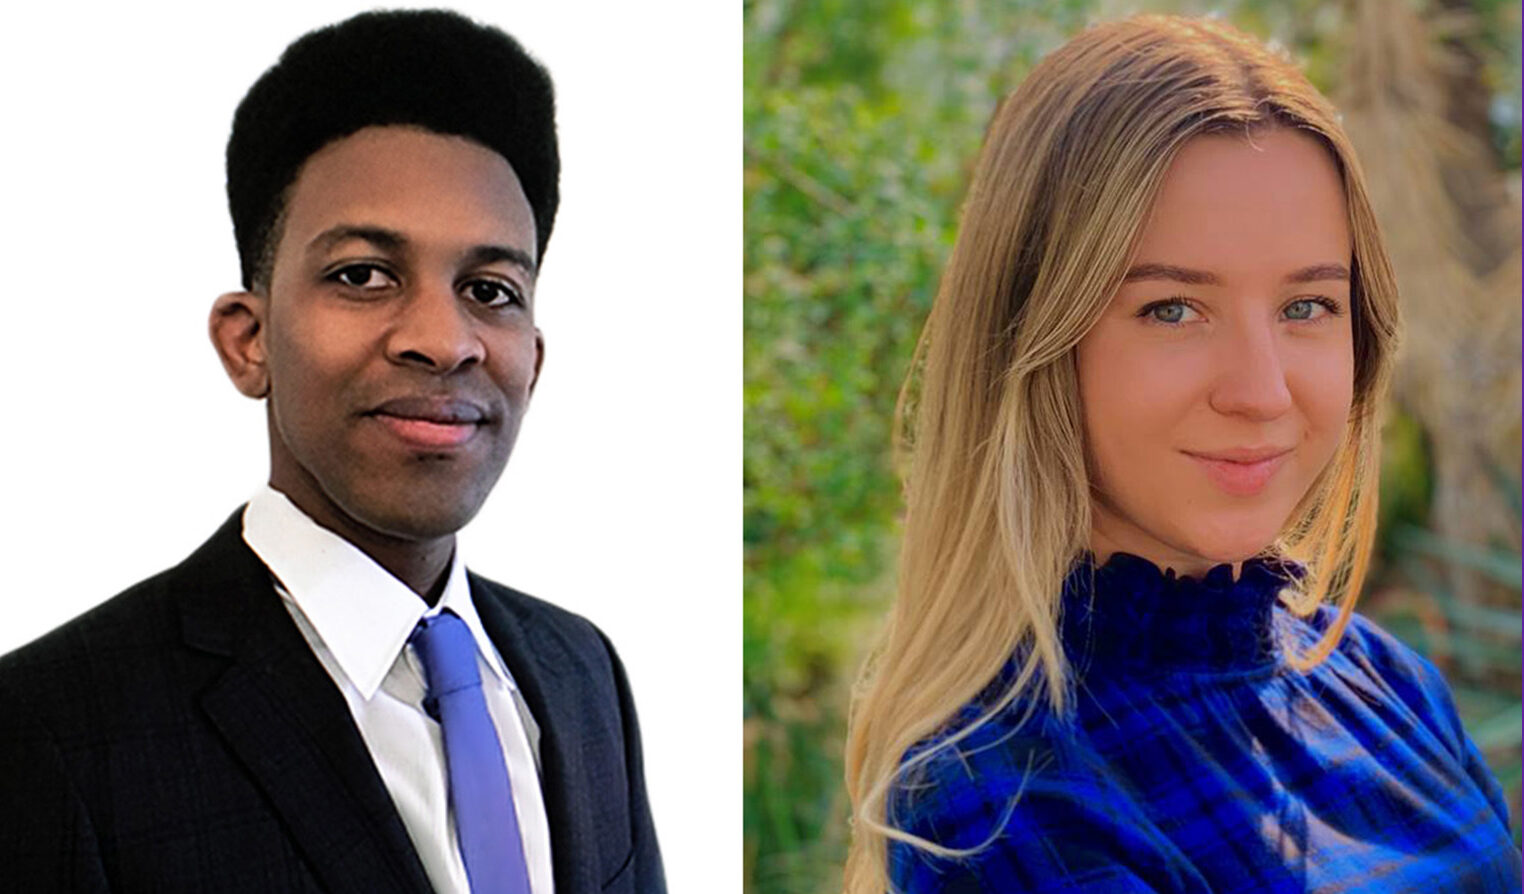 Hasani Arnold '19 and Margarita Labkovich '17 to Study Global Affairs in Beijing Next Fall